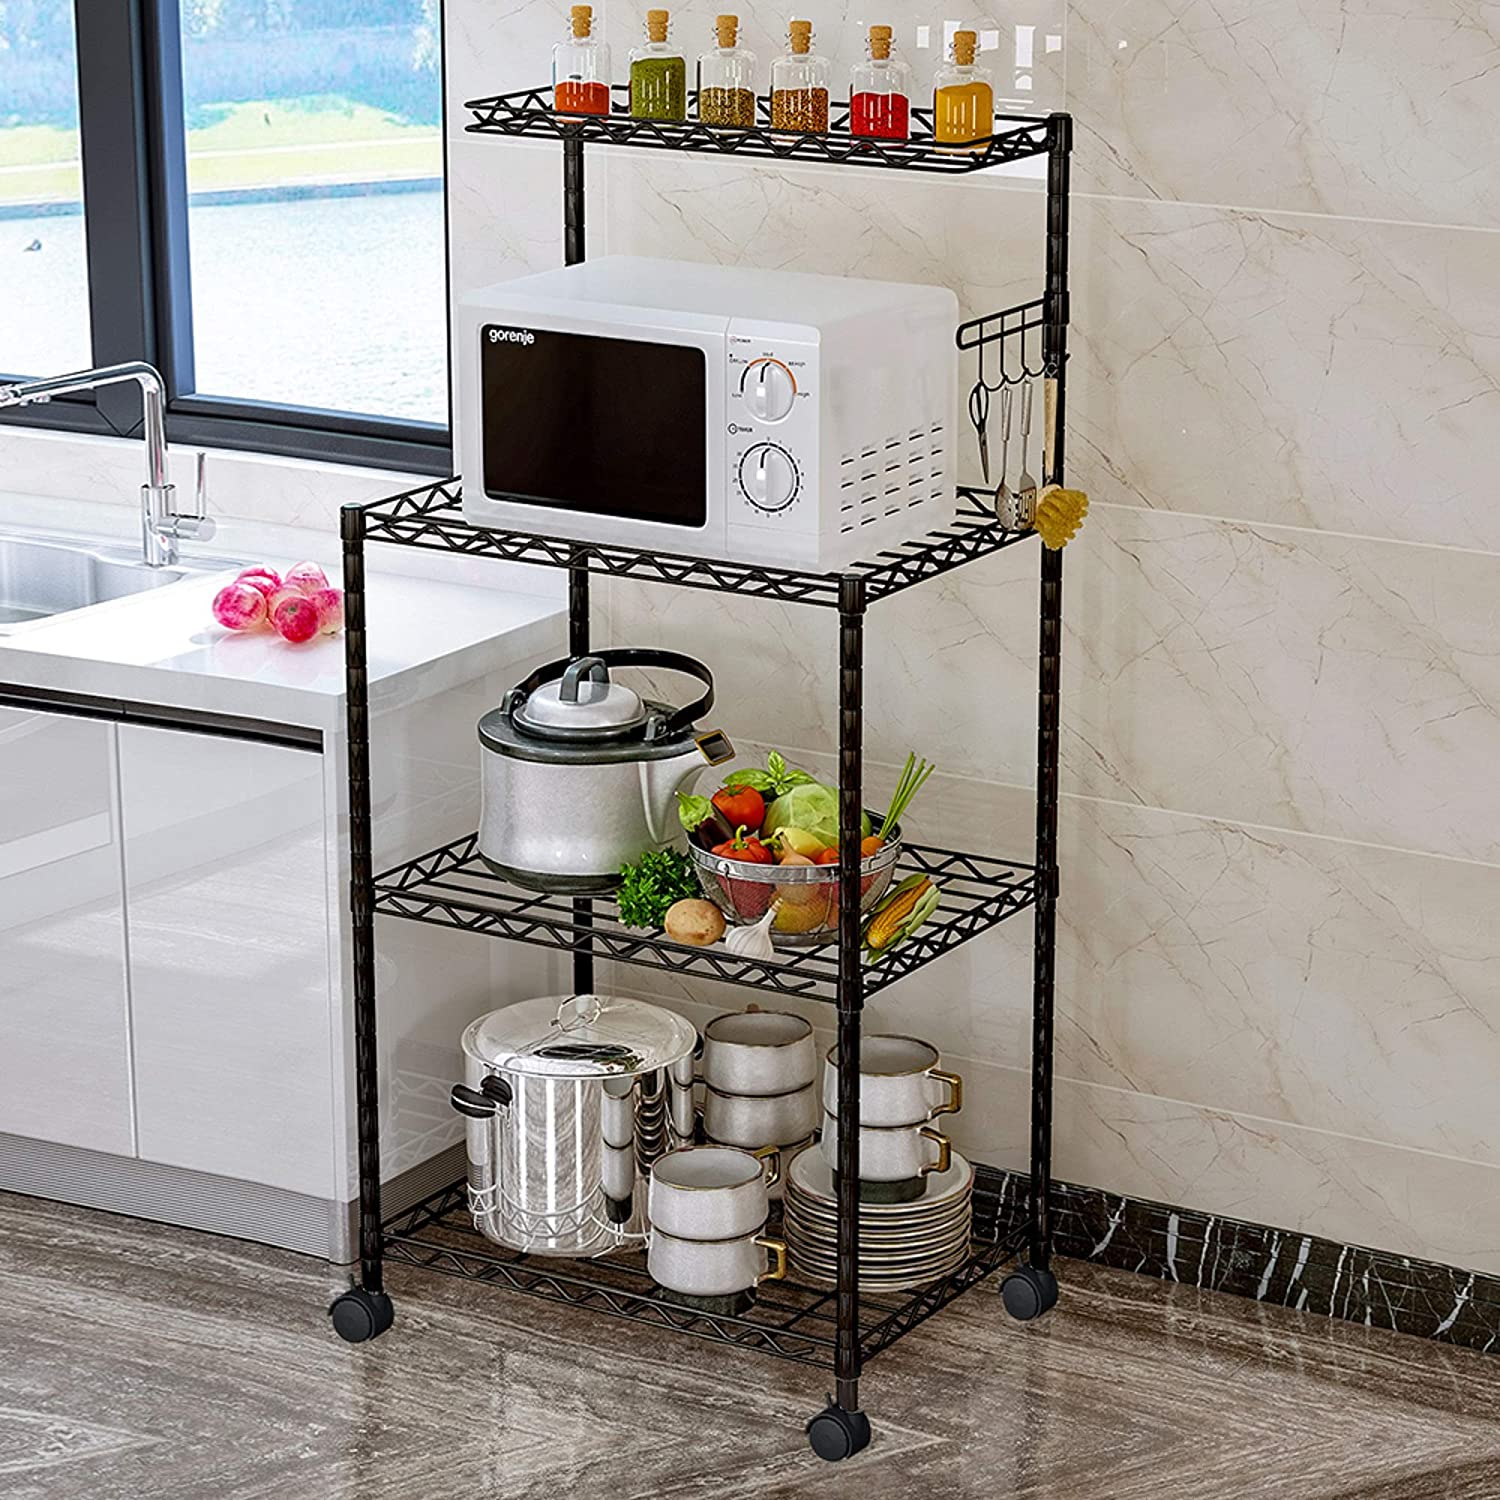 LENTIA 4-Tier Baker s Rack Microwave Stand Kitchen Oven Rack with Wire Mesh Shelves 4-Side Hooks 4 Wheel Casters Adjustable Leg Plug